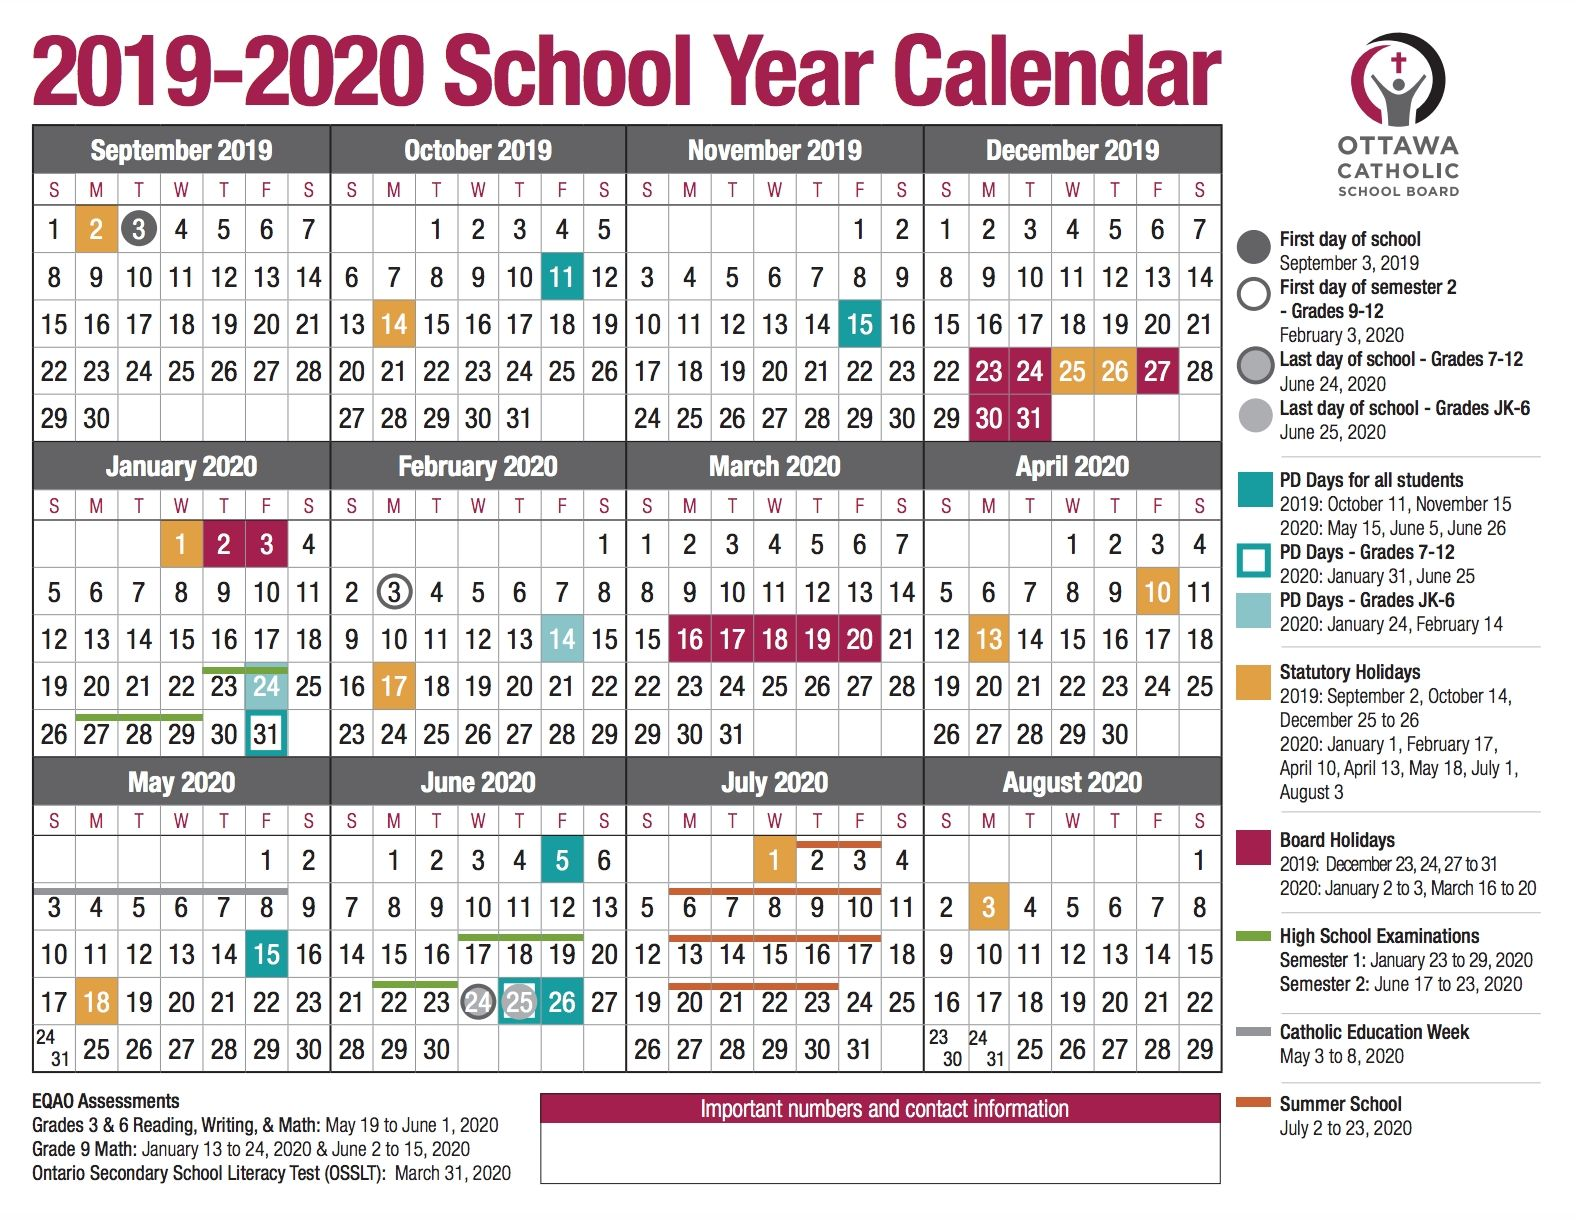 Dashing 2020 Ontario Calendar With Holidays Together With The Tentative Date For All Those Exams Tentative Dates For Telling Release